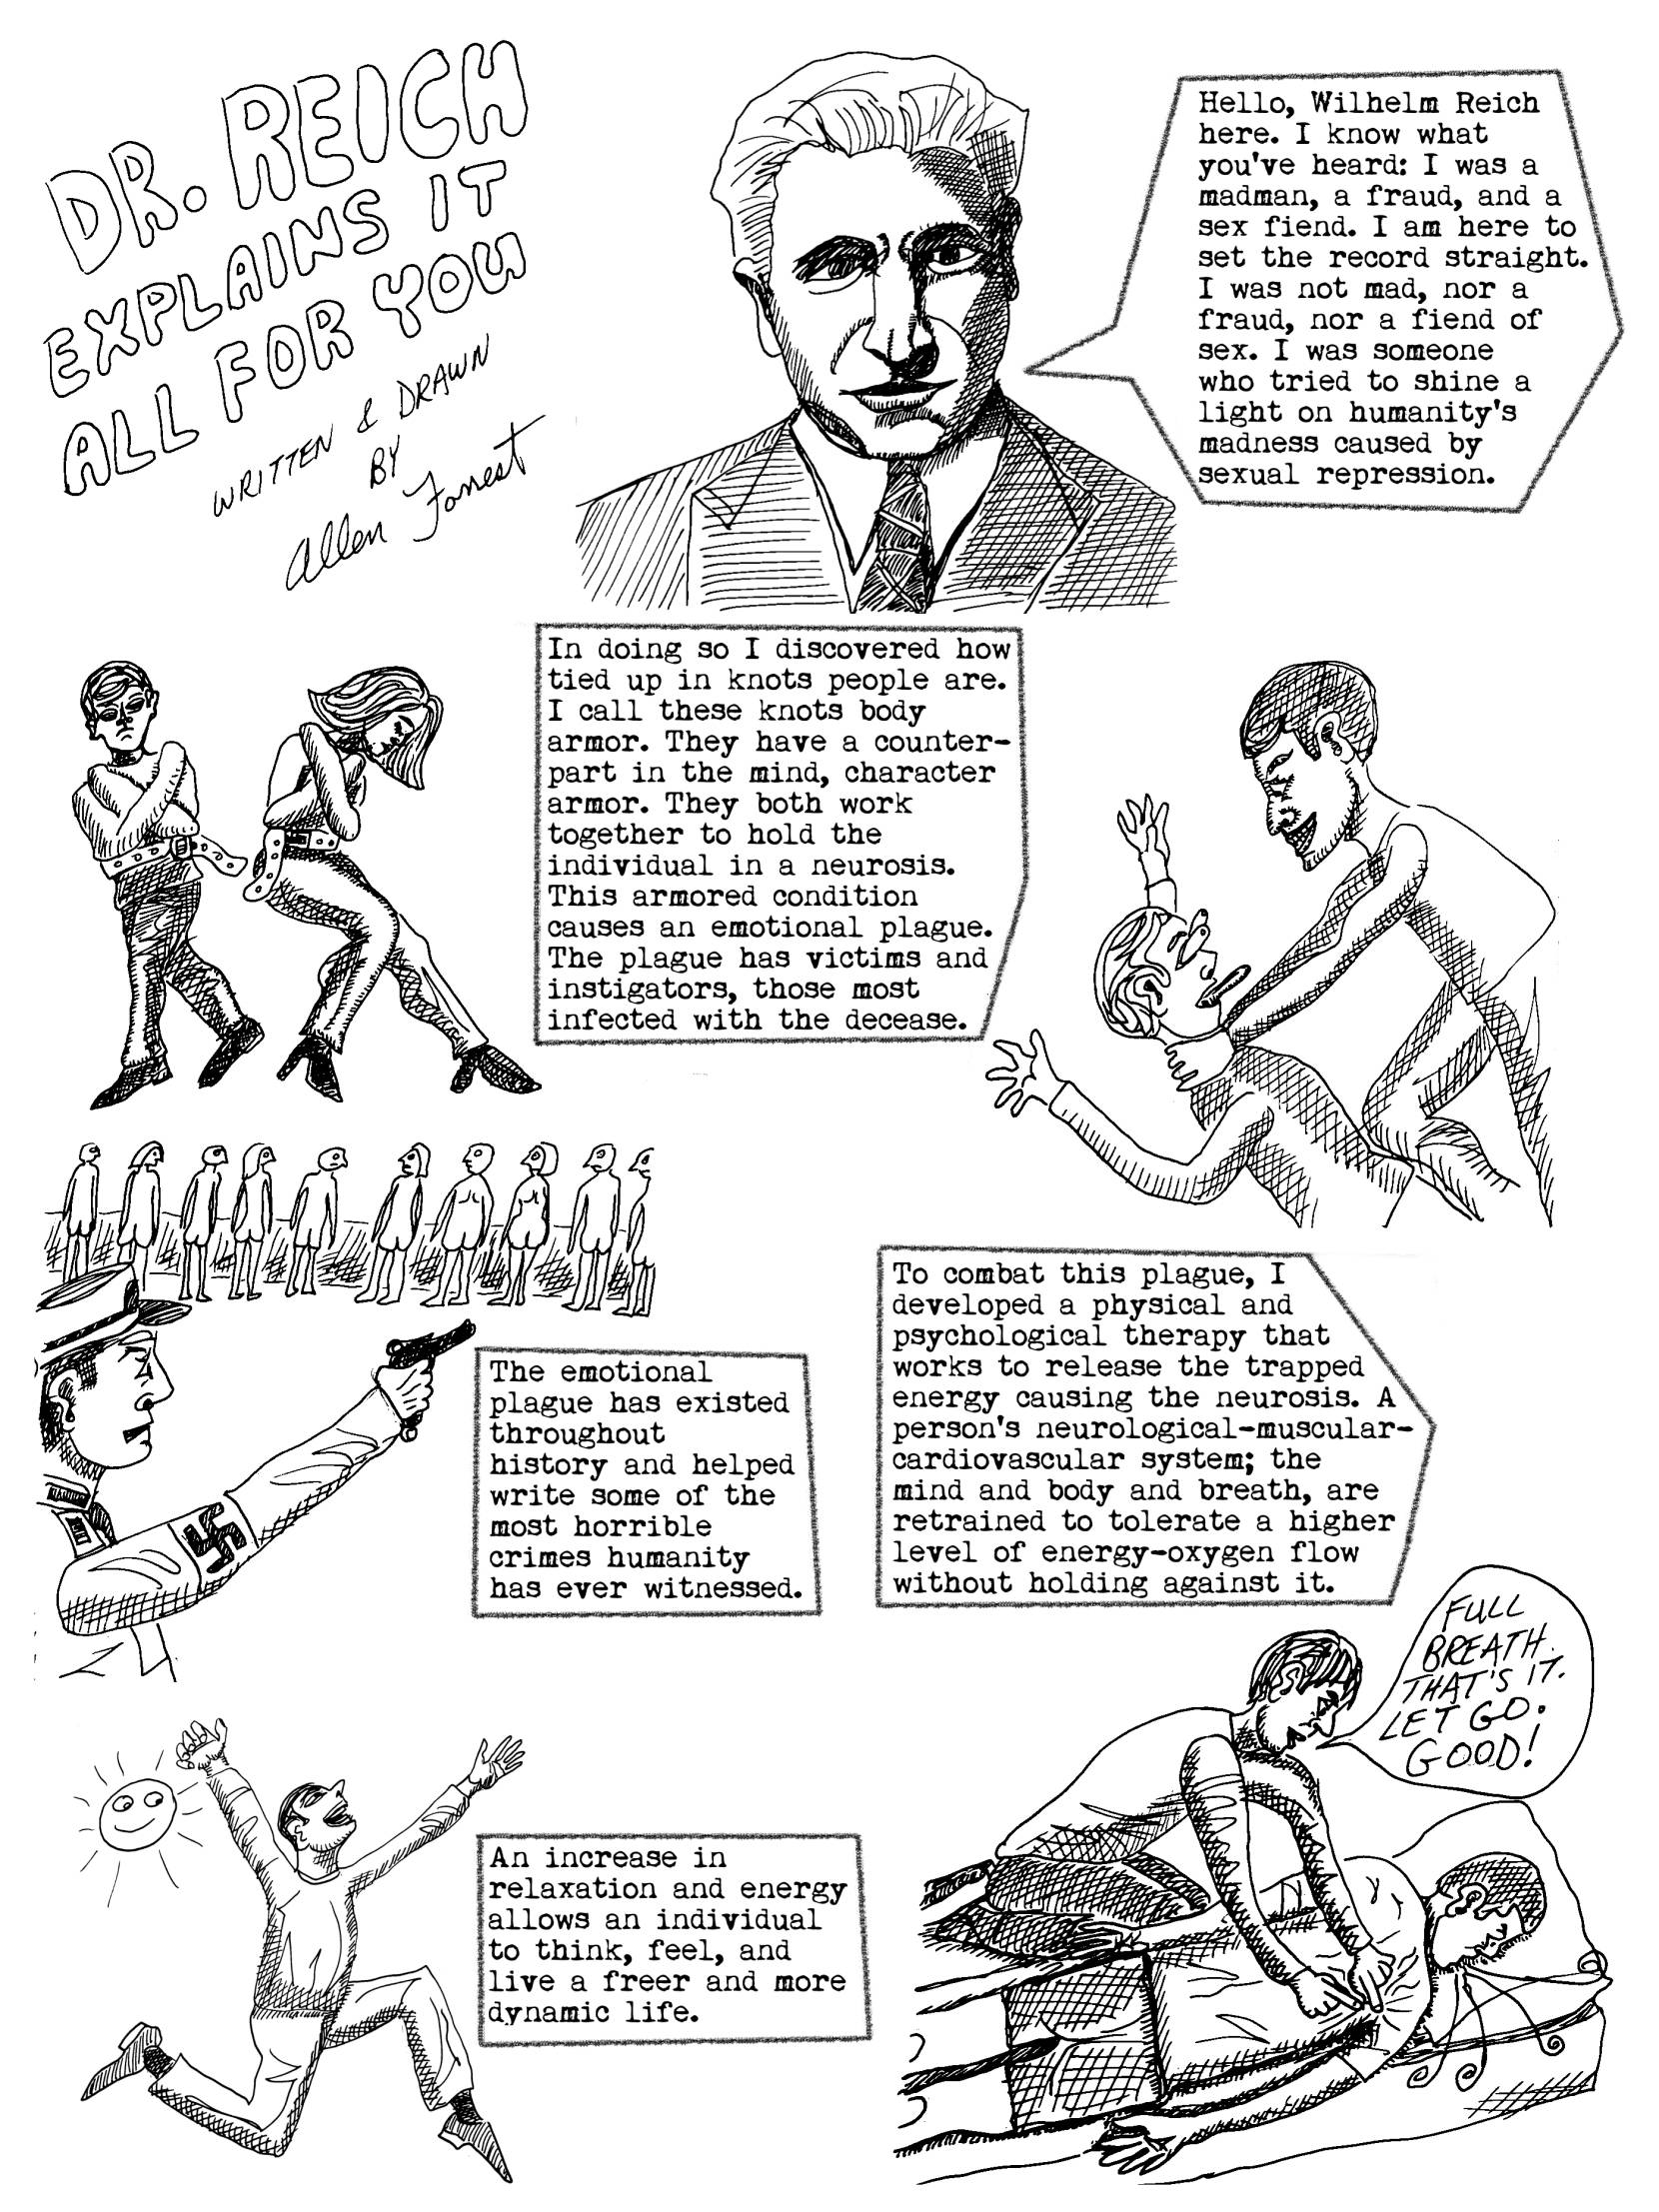 dr_reich_explains_it_all_for_you_page_1_by_allen_forrest1